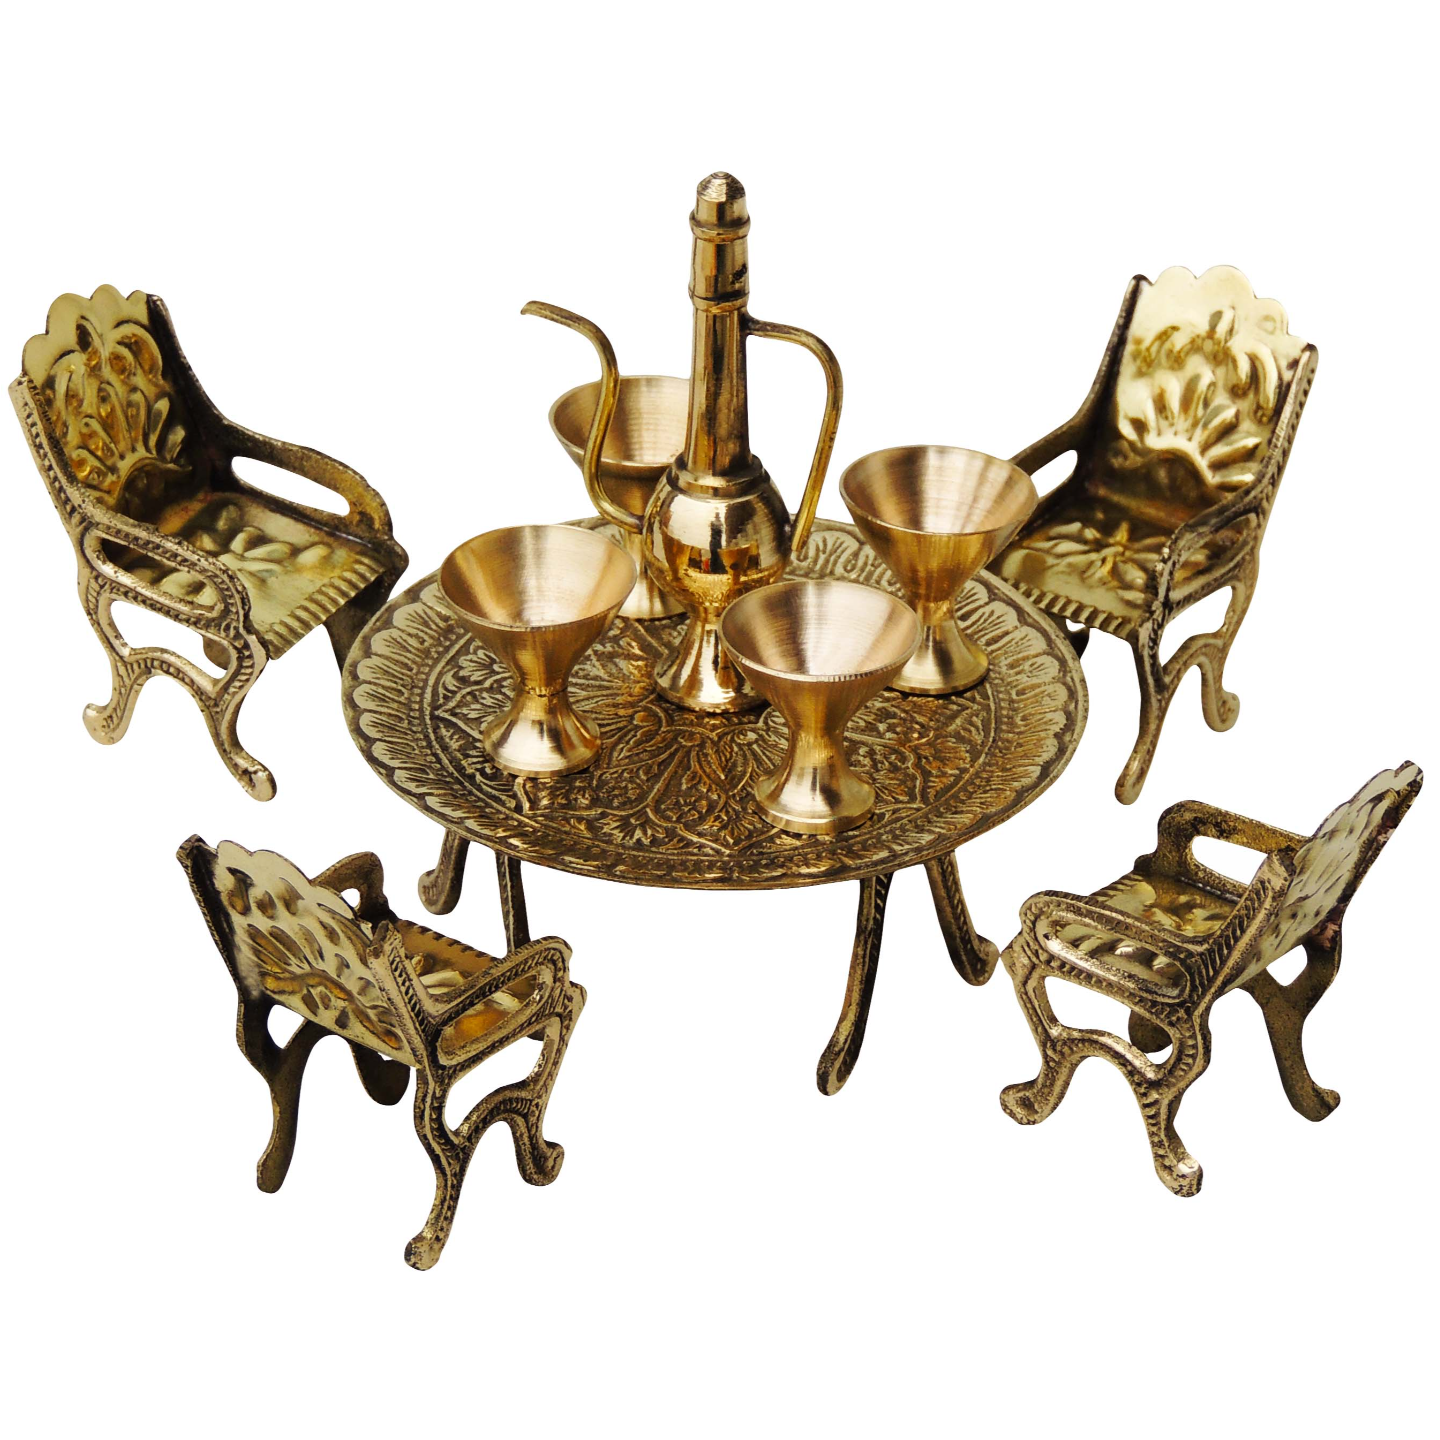 Brass Mini Miniature Dining Table set for Children playing F484 A